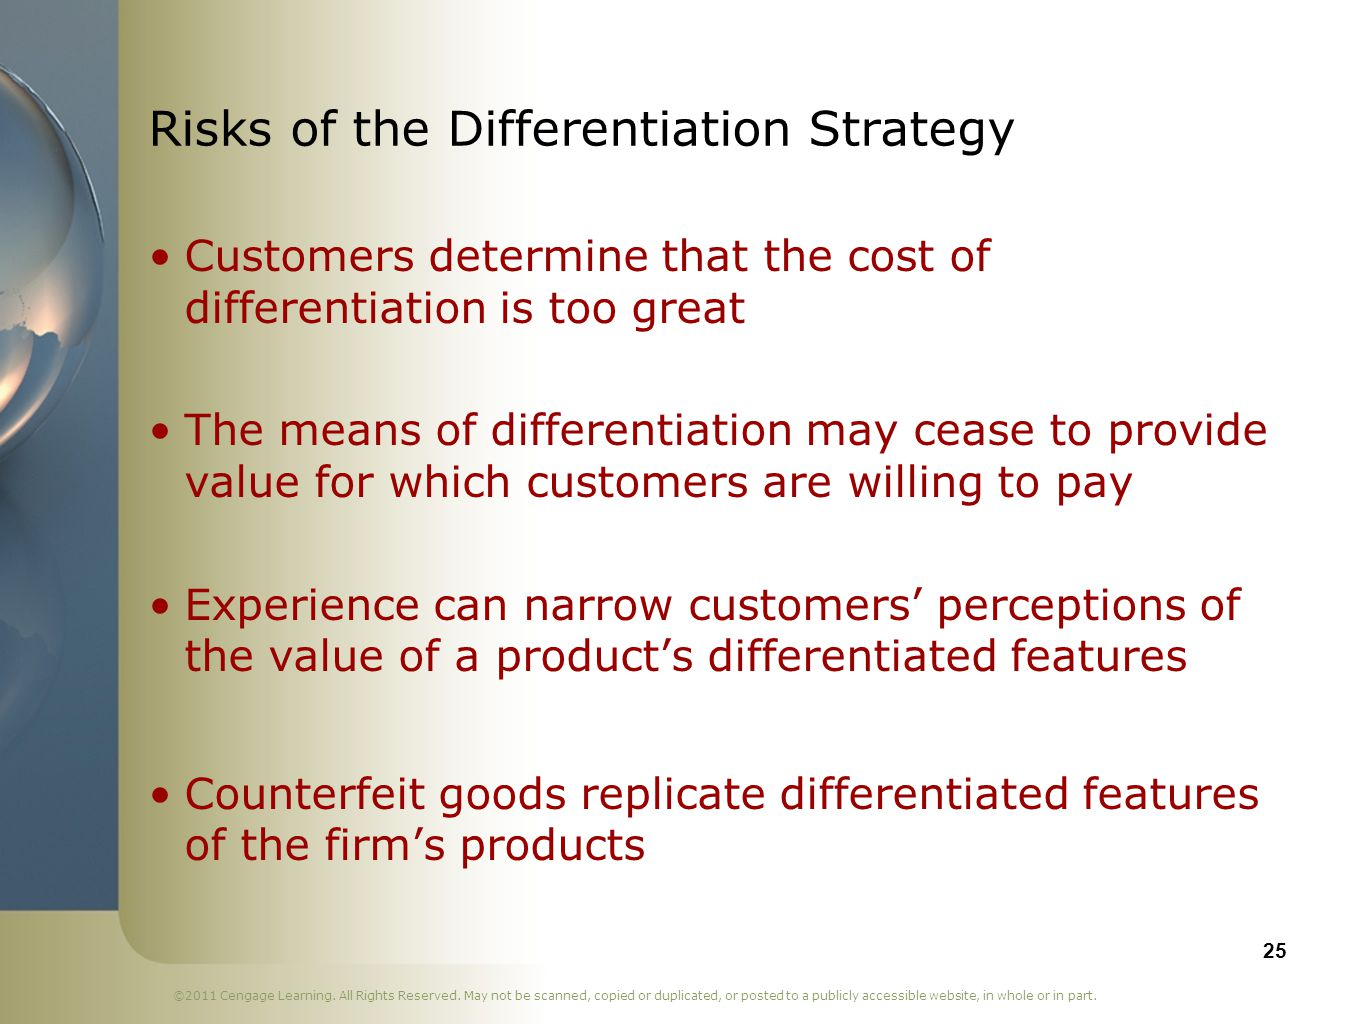 Risks of the Differentiation Strategy